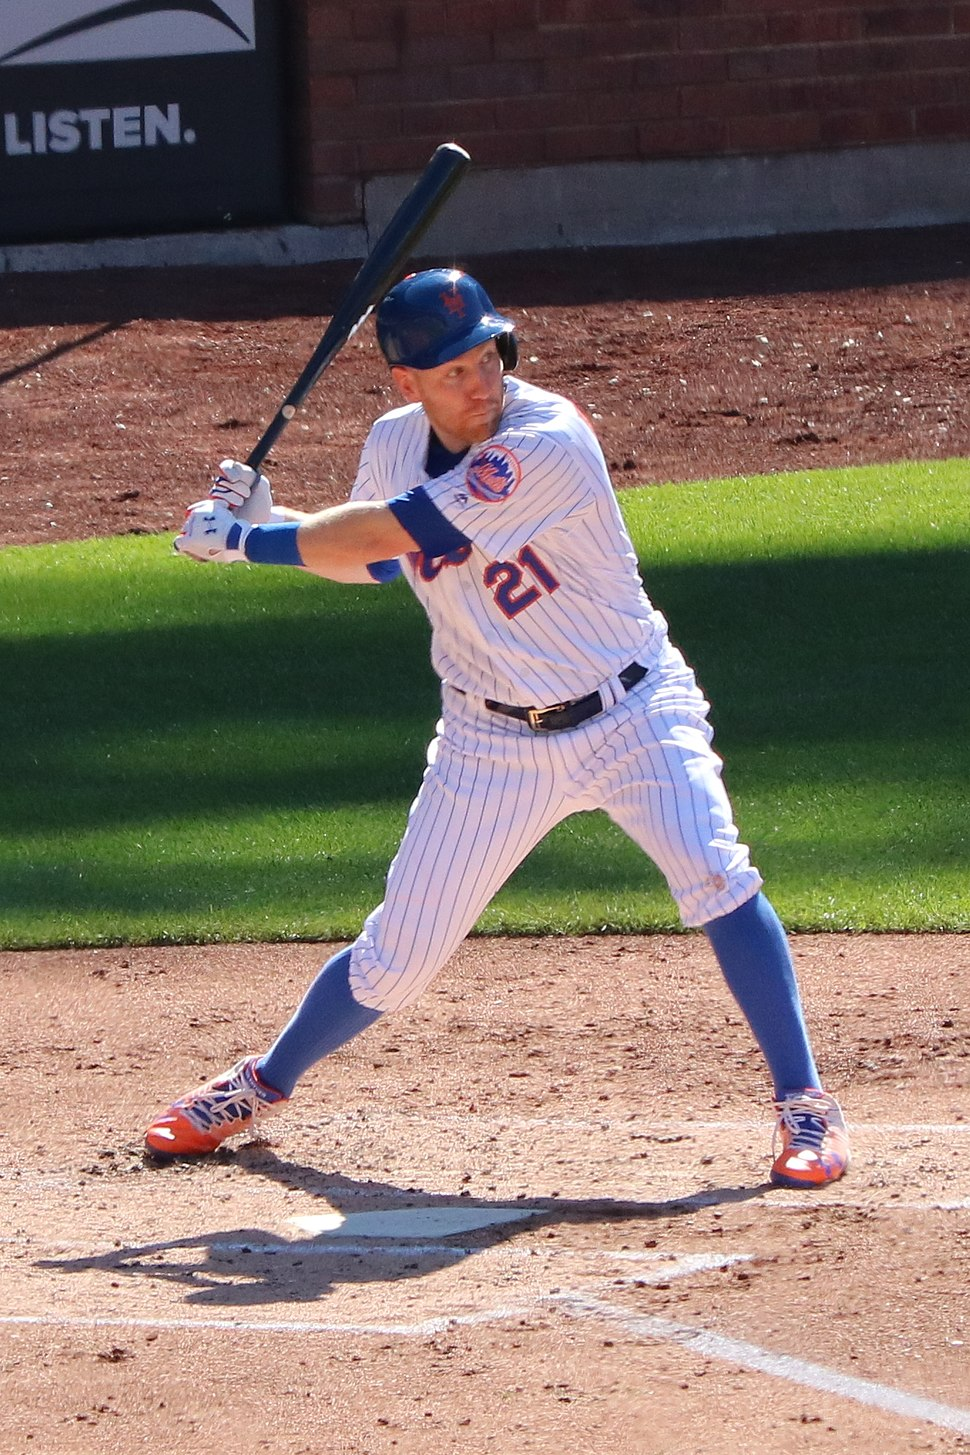 Todd Frazier at bat, July 7, 2018 (cropped)